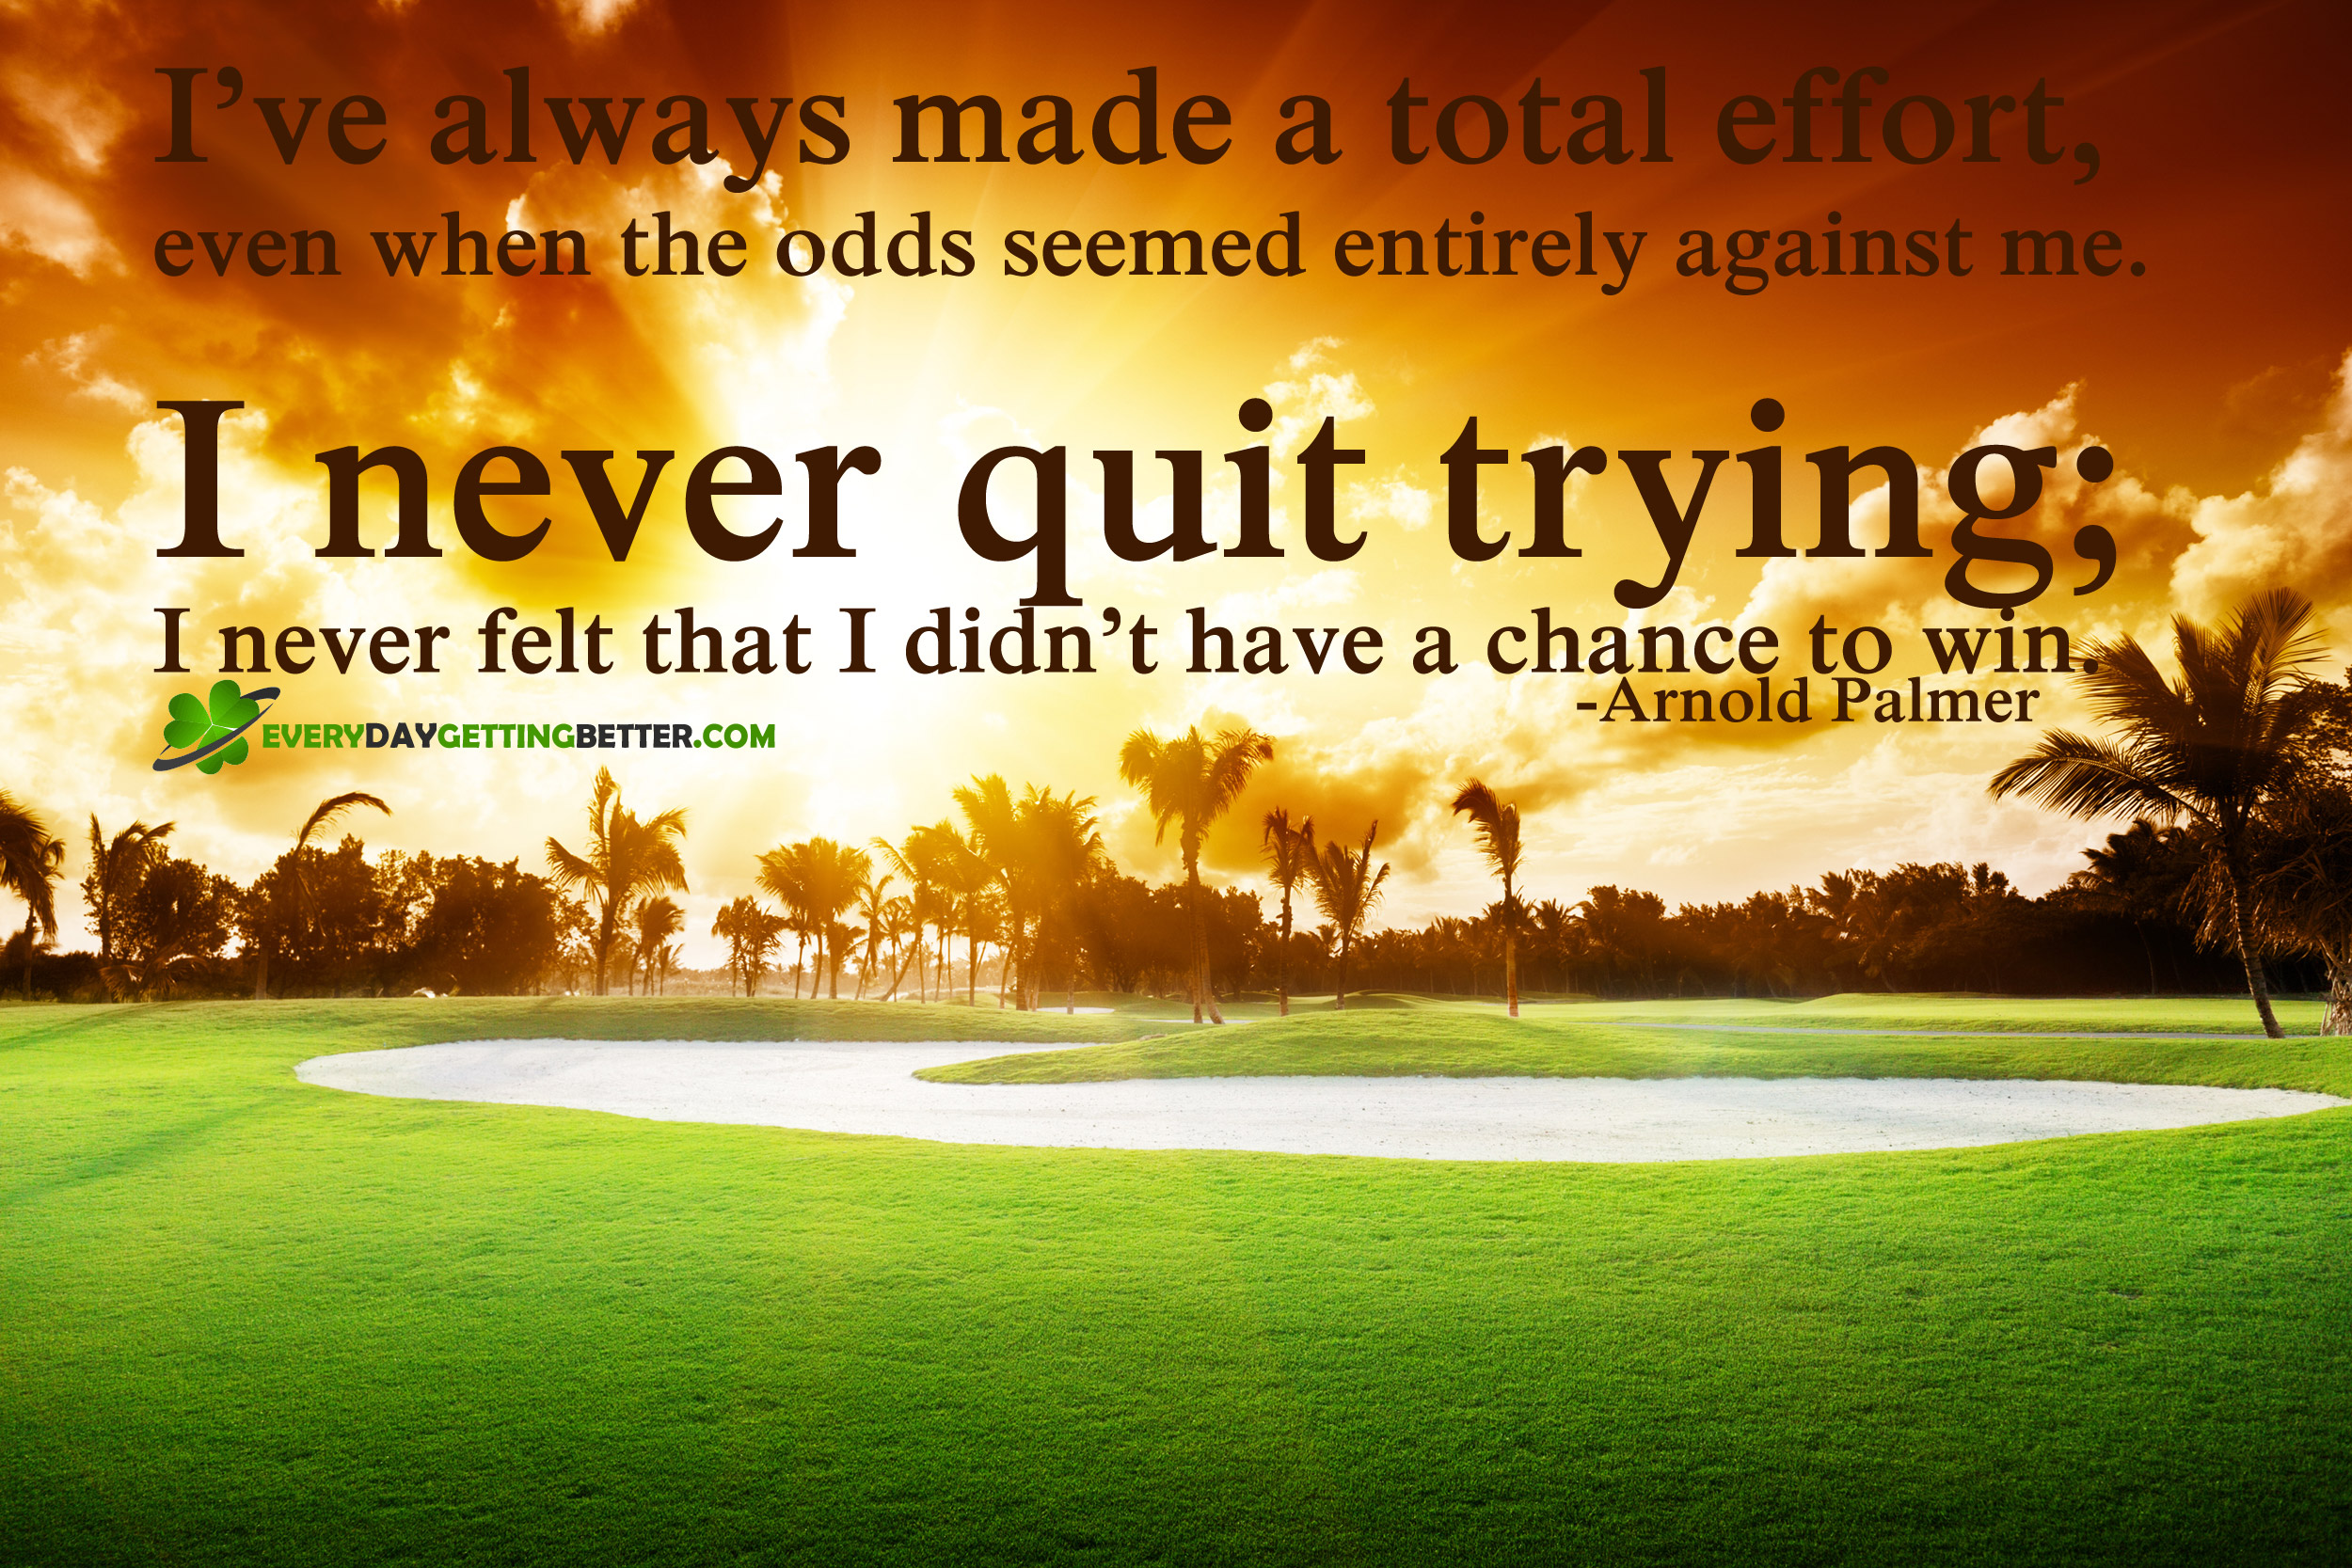 Arnold Palmer Quotes Total Effort  Every Day Getting Better